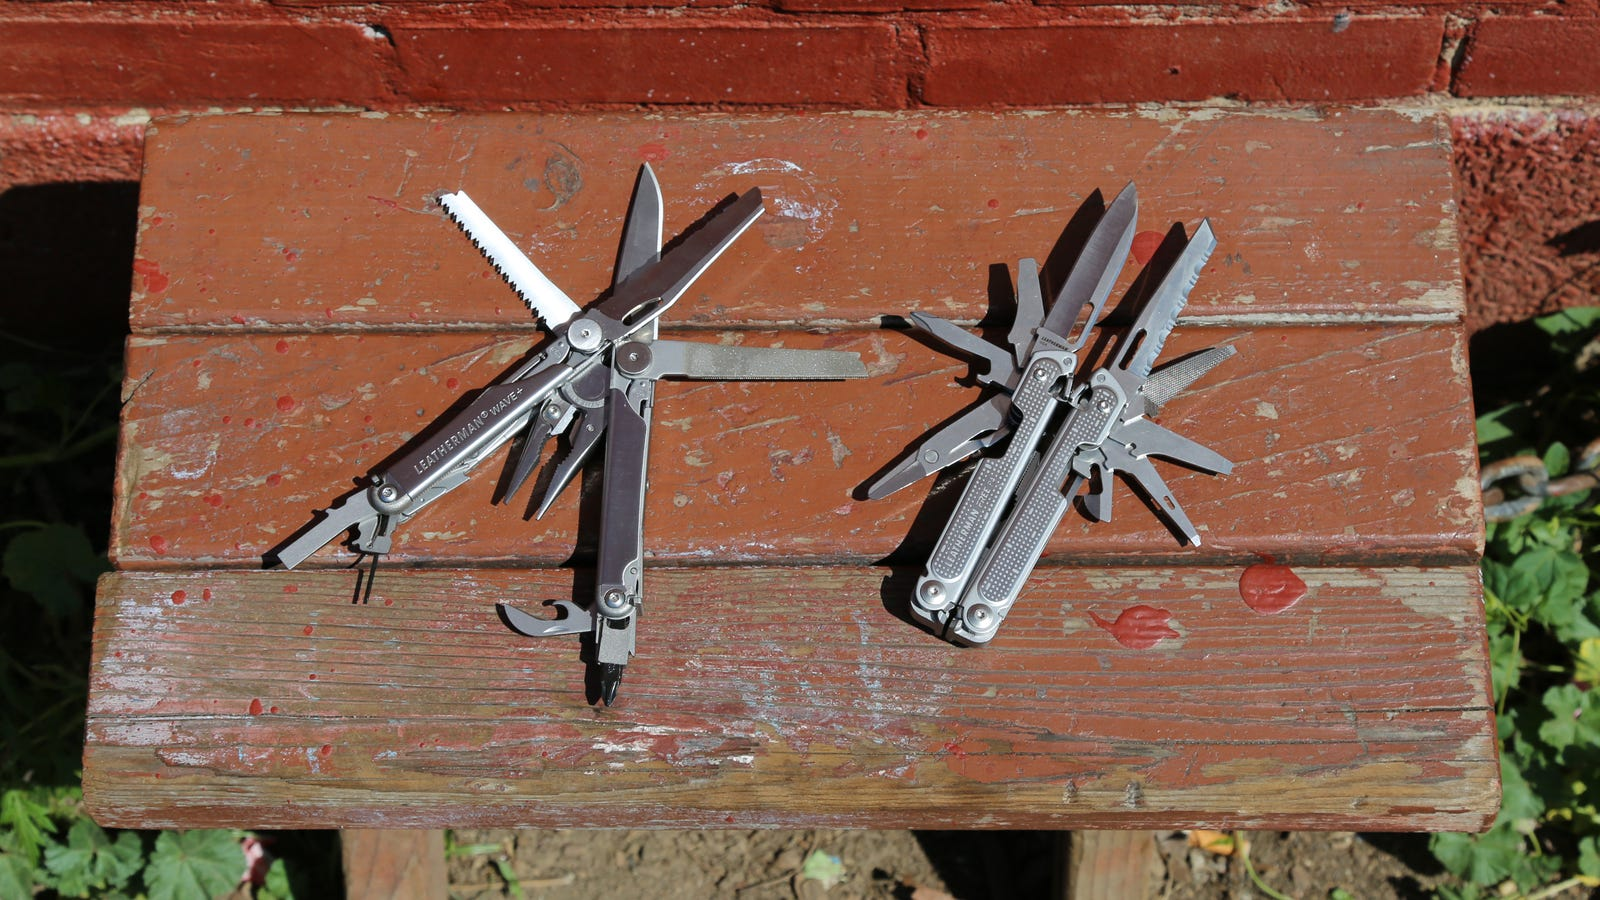 The Leatherman Wave+ (left) versus the Leatherman Free P4 (right)